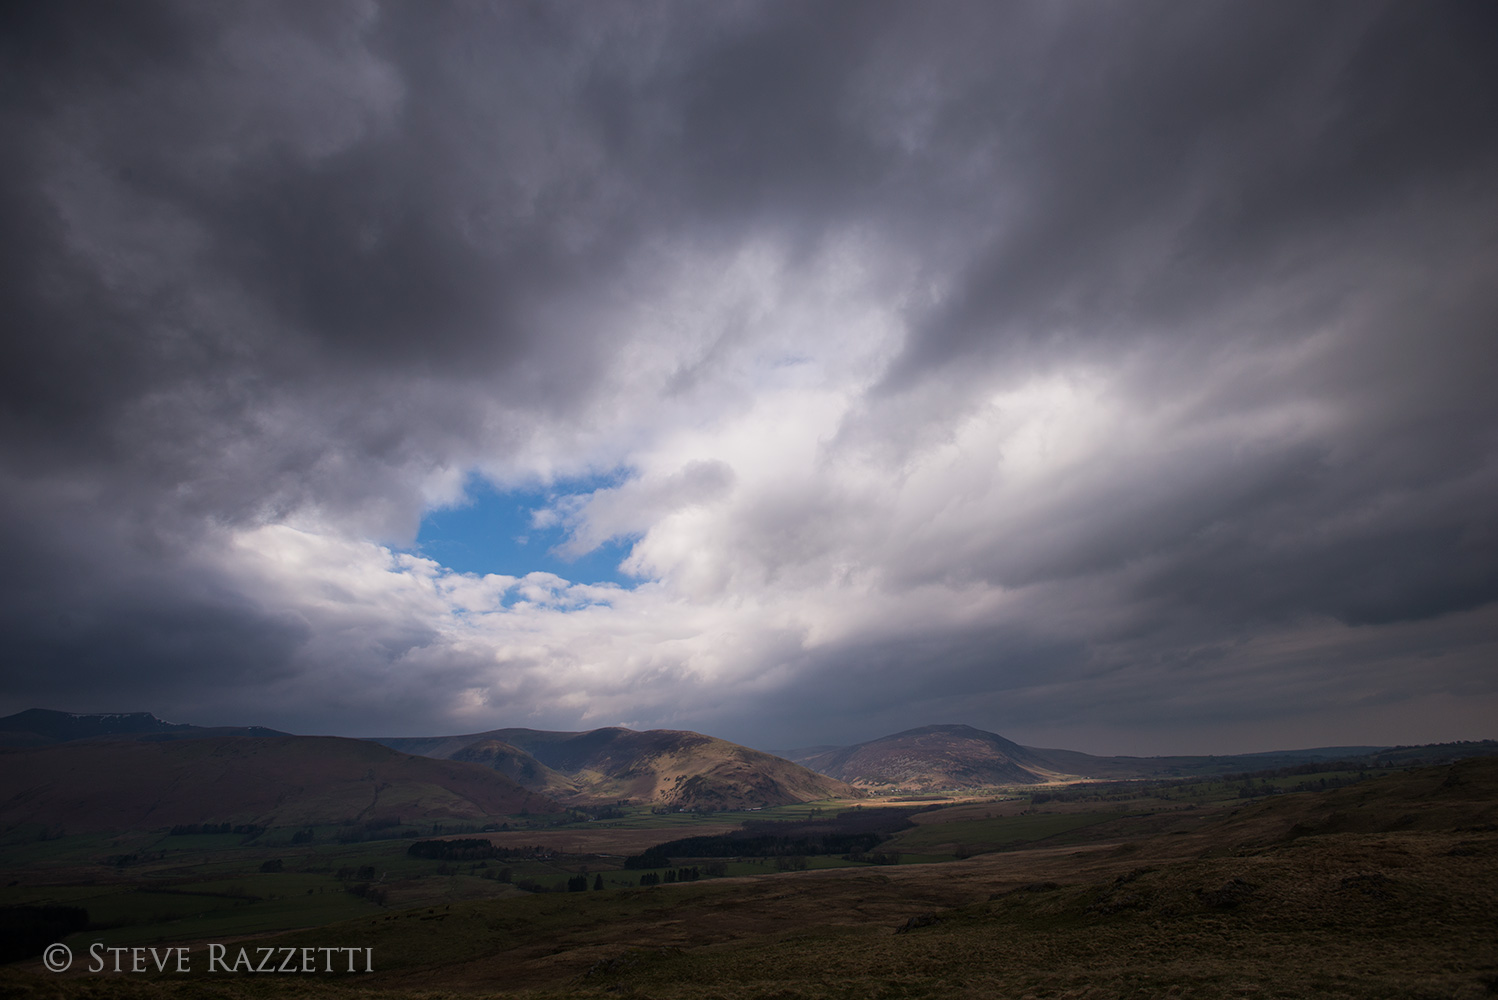 A view to Mungrisedale and Mosedale, with Blencathra on the left, Bowscale Fell and Carrock Fell catching the sun under a stormy sky.